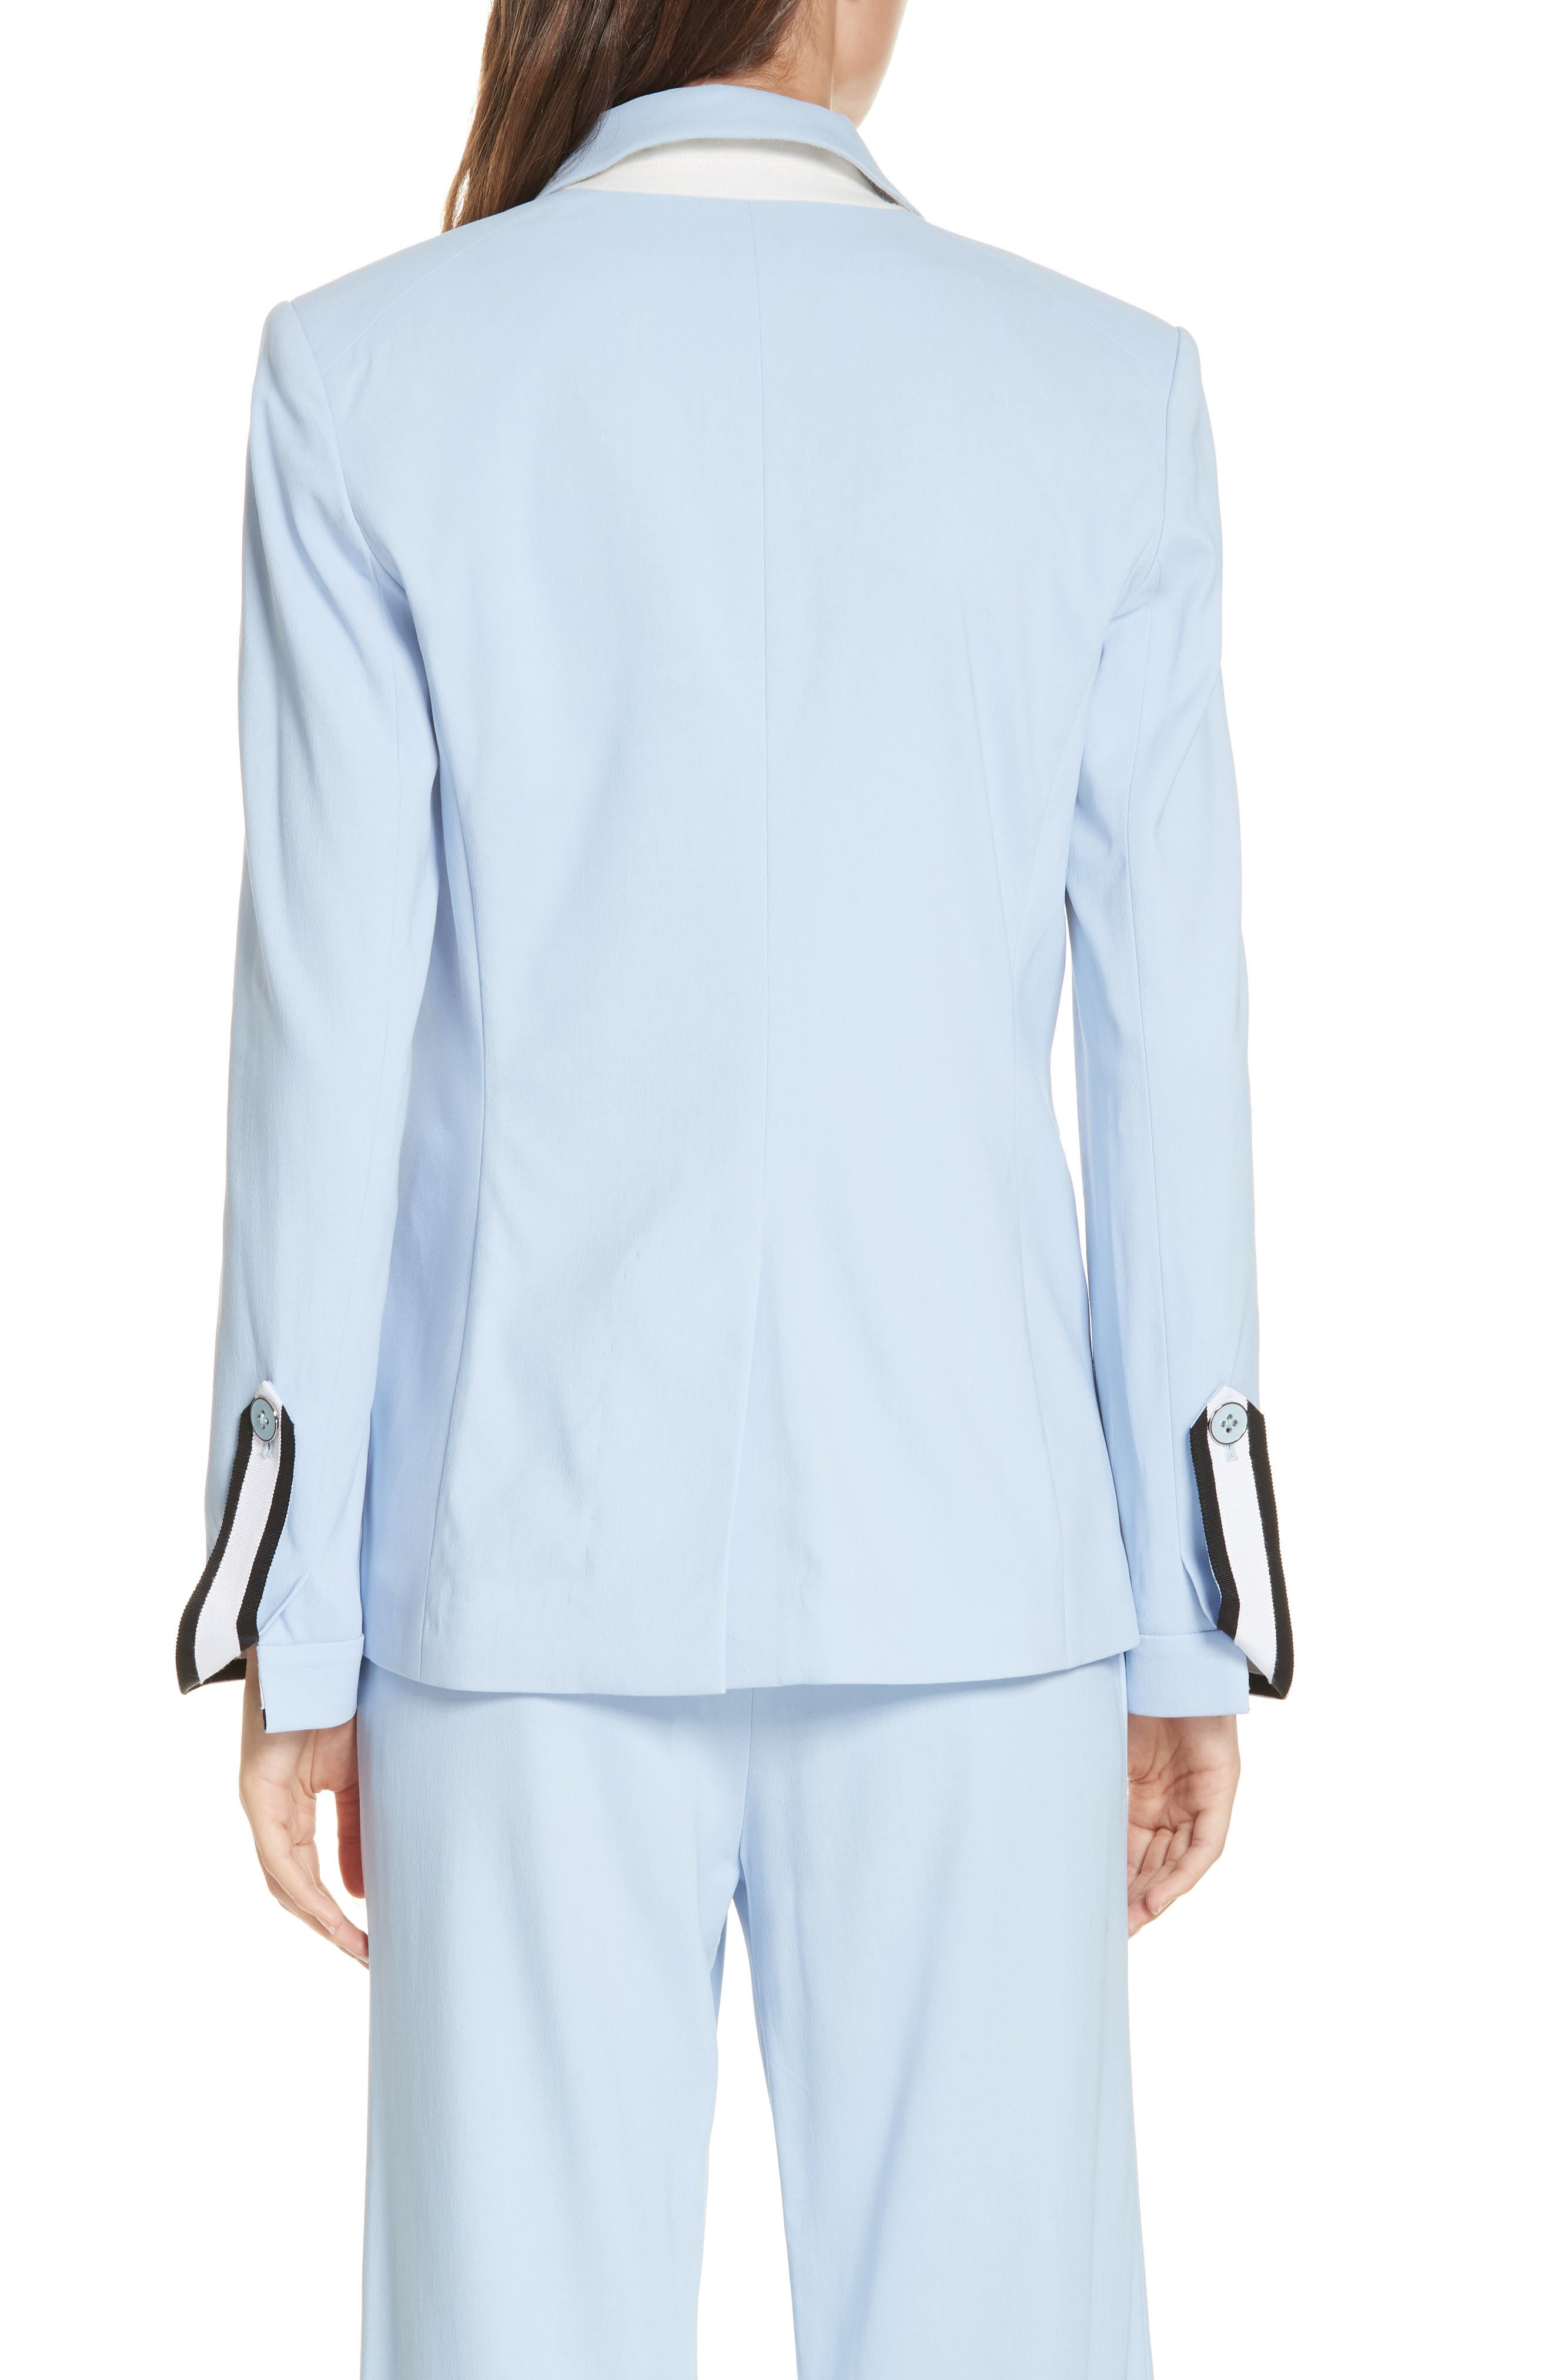 Aros Dickey Jacket,                             Alternate thumbnail 3, color,                             LIGHT BLUE